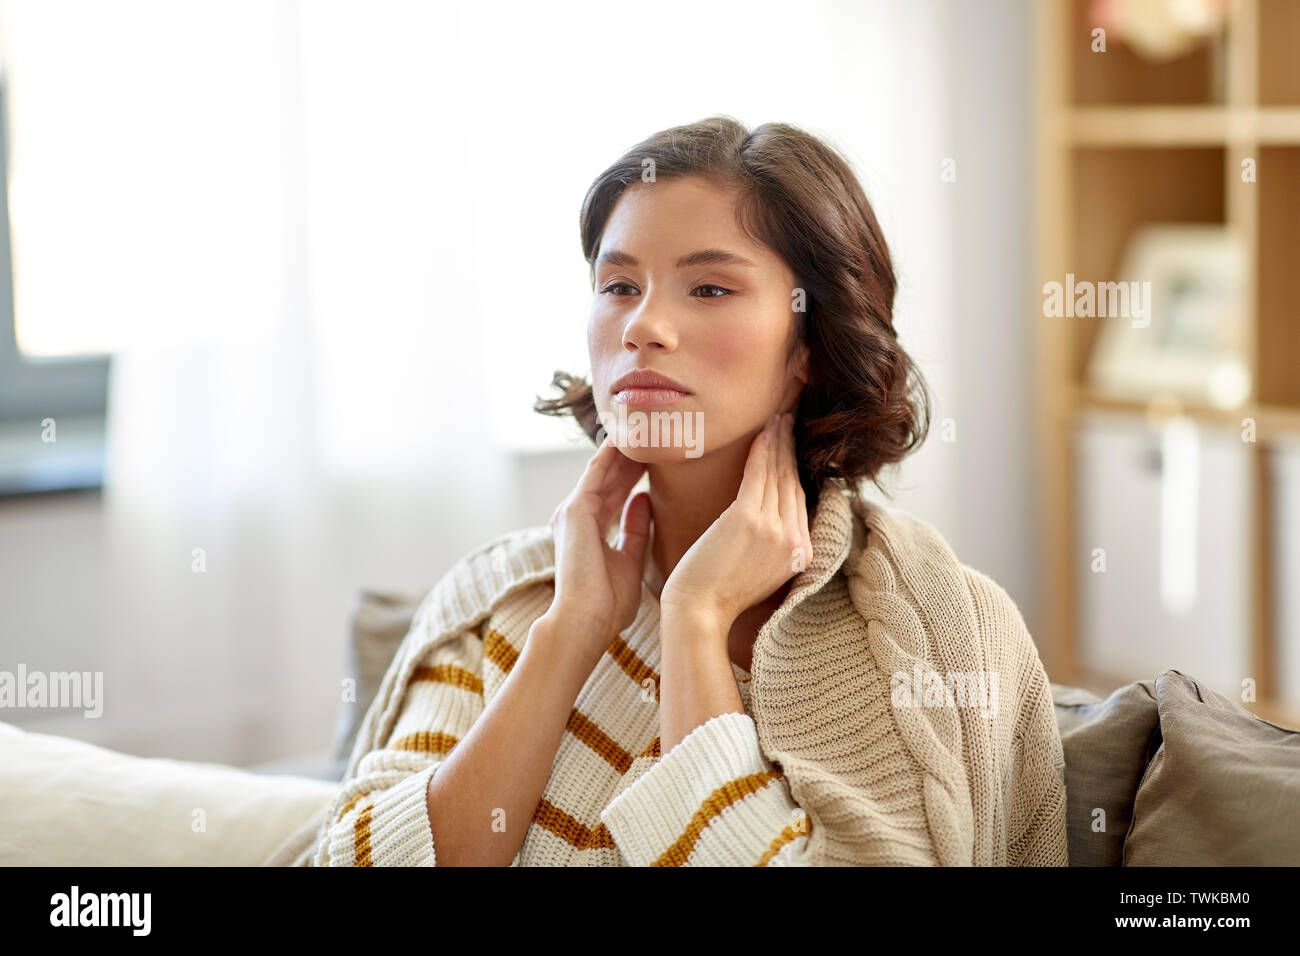 sick woman touching her lymph nodes at home - Stock Image